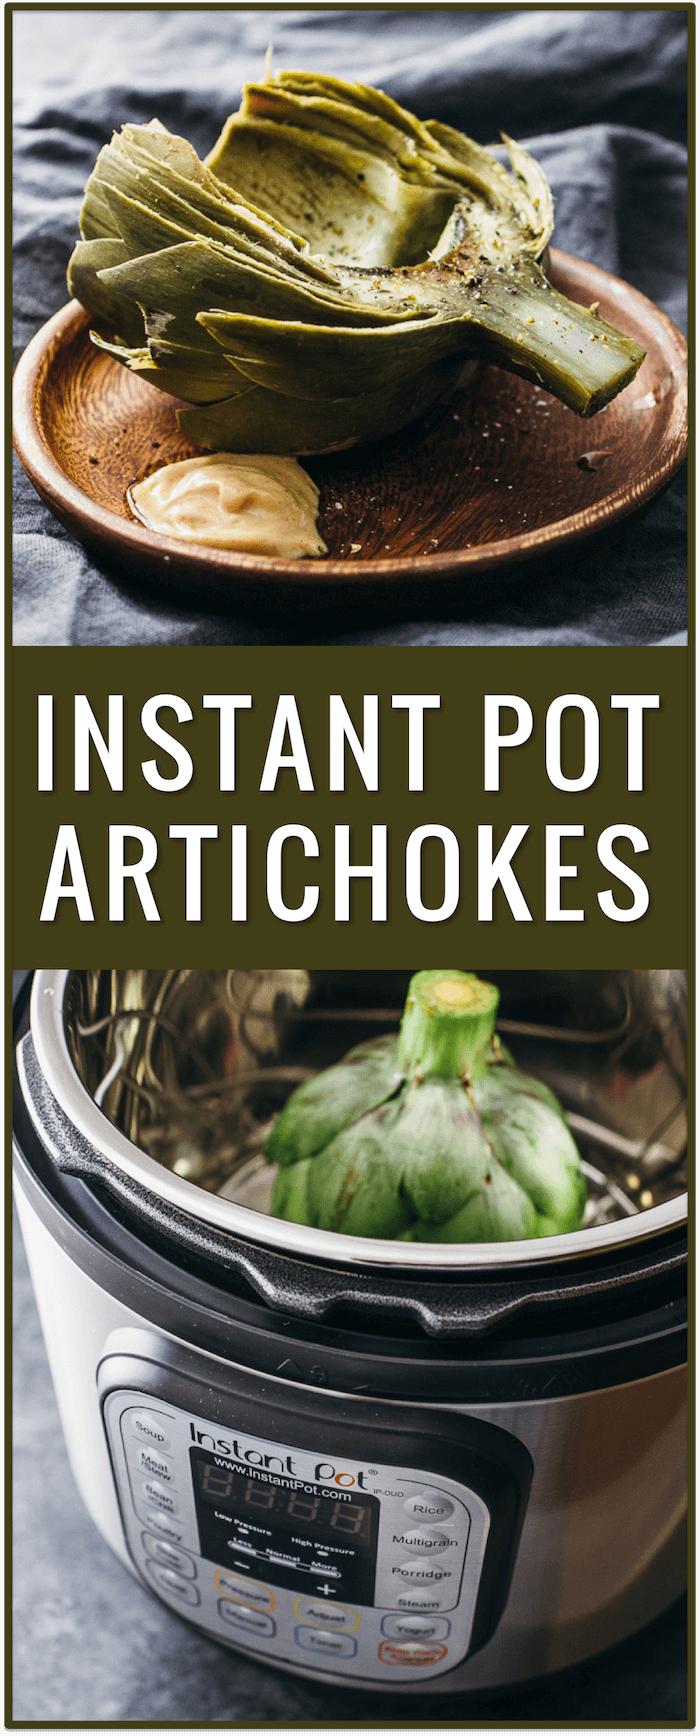 instant pot, electric pressure cooker, artichokes, dipping sauce, spicy garlic mustard dip, appetizer, dish, recipe, easy, simple, fast